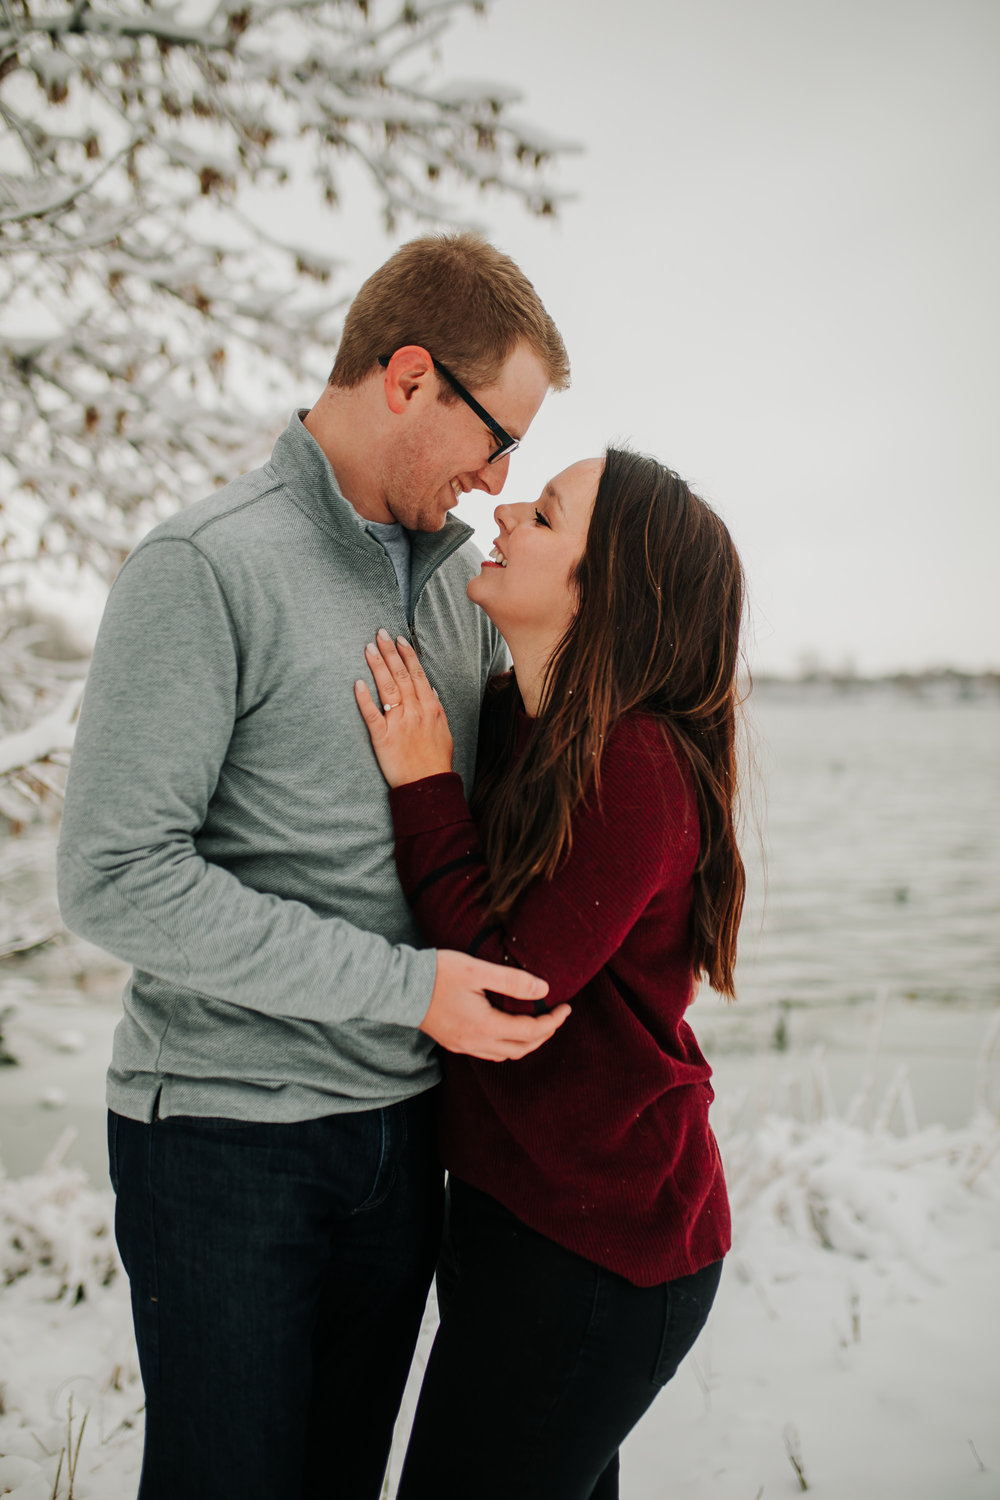 Vanessa & Dan - Engaged - Nathaniel Jensen Photography - Omaha Nebraska Wedding Photographer - Standing Bear Lake - Snowy Engagement Session-76.jpg